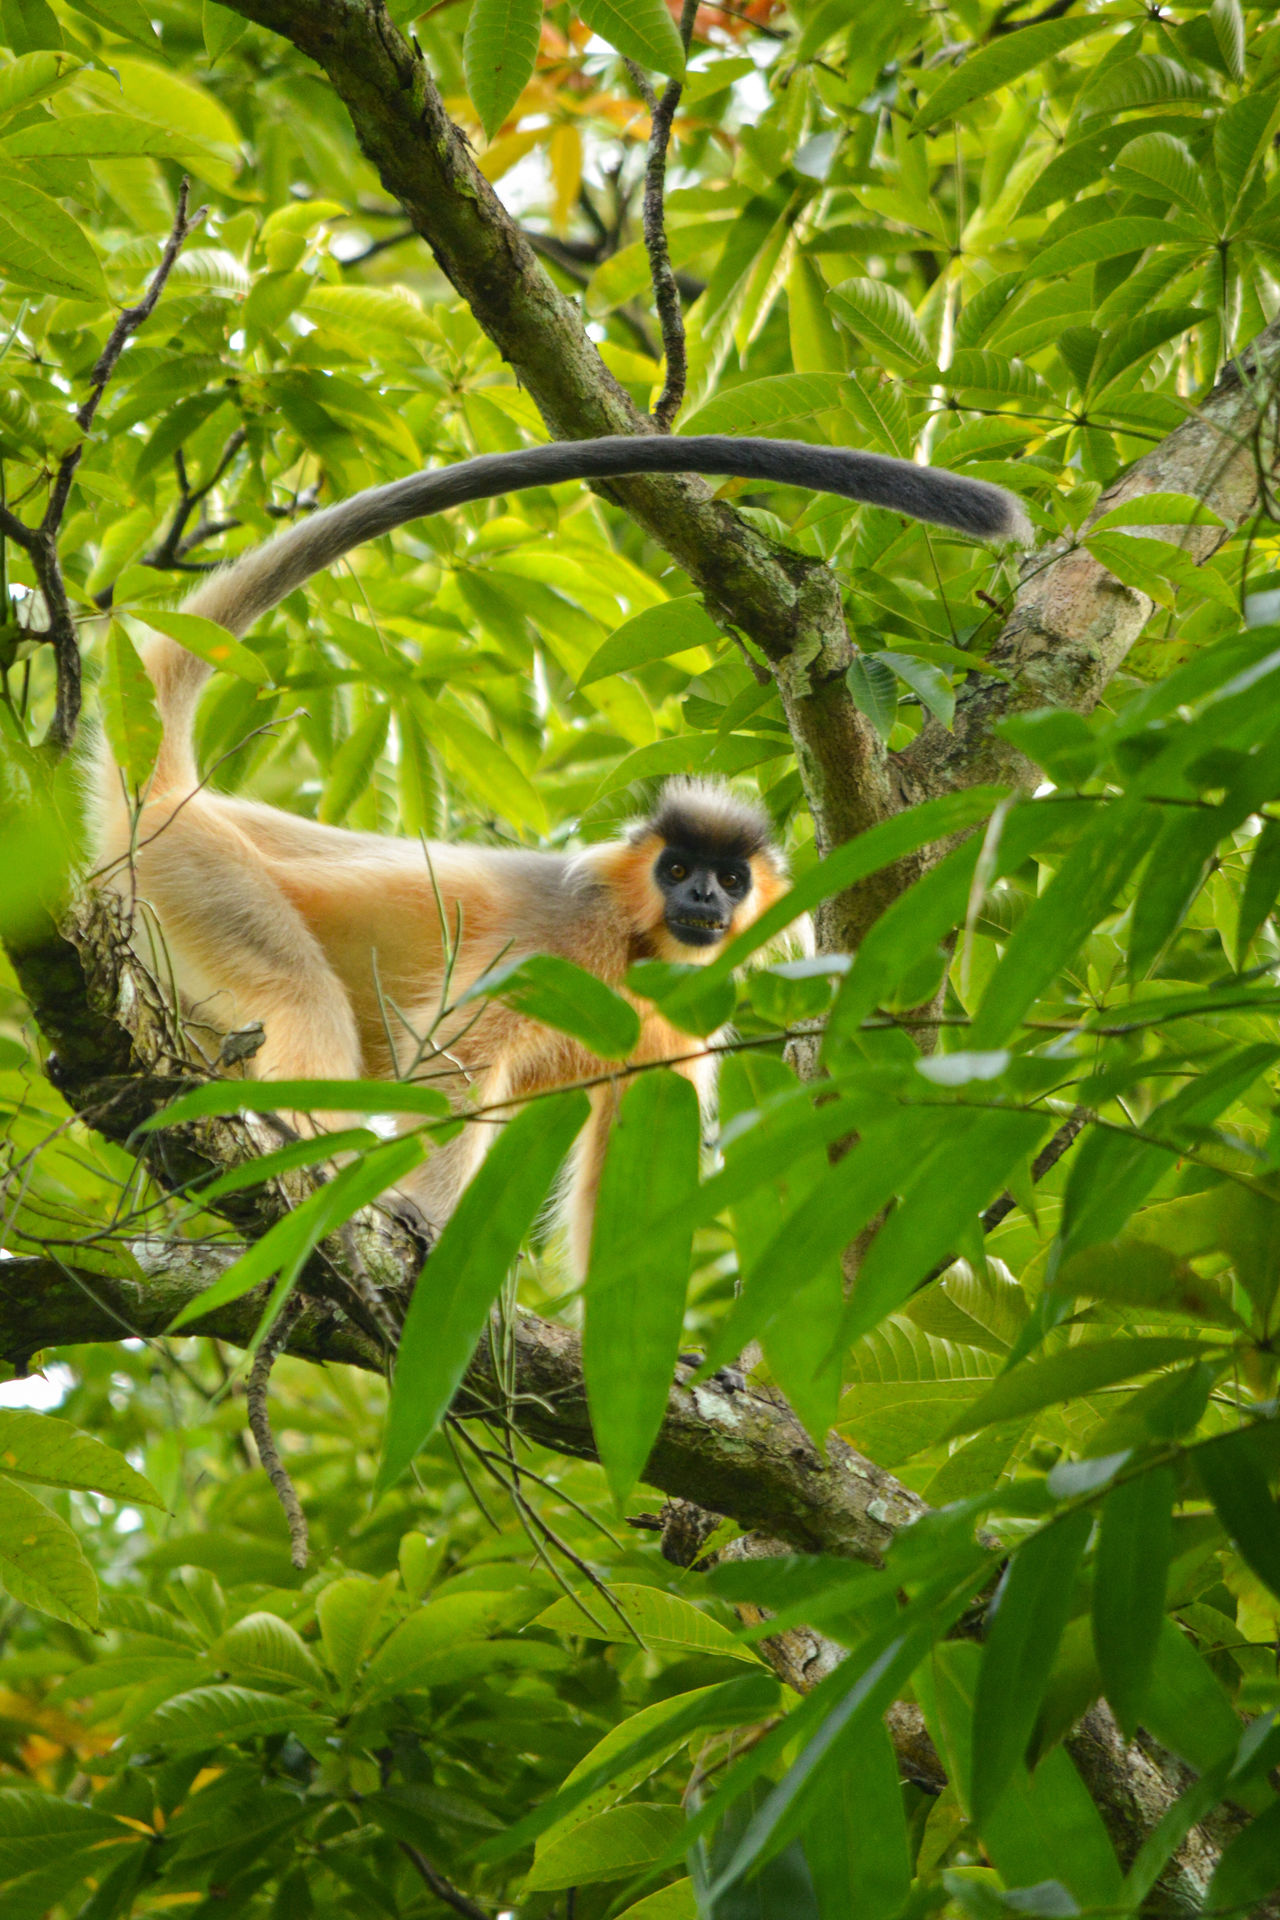 Capped Langur Capped Langur One Animal Animals In The Wild Nature Tree Day Outdoors Beauty In Nature Taking Photos Monkey Forest Monkey Alpha Male Assam, India The Great Outdoors - 2017 EyeEm Awards